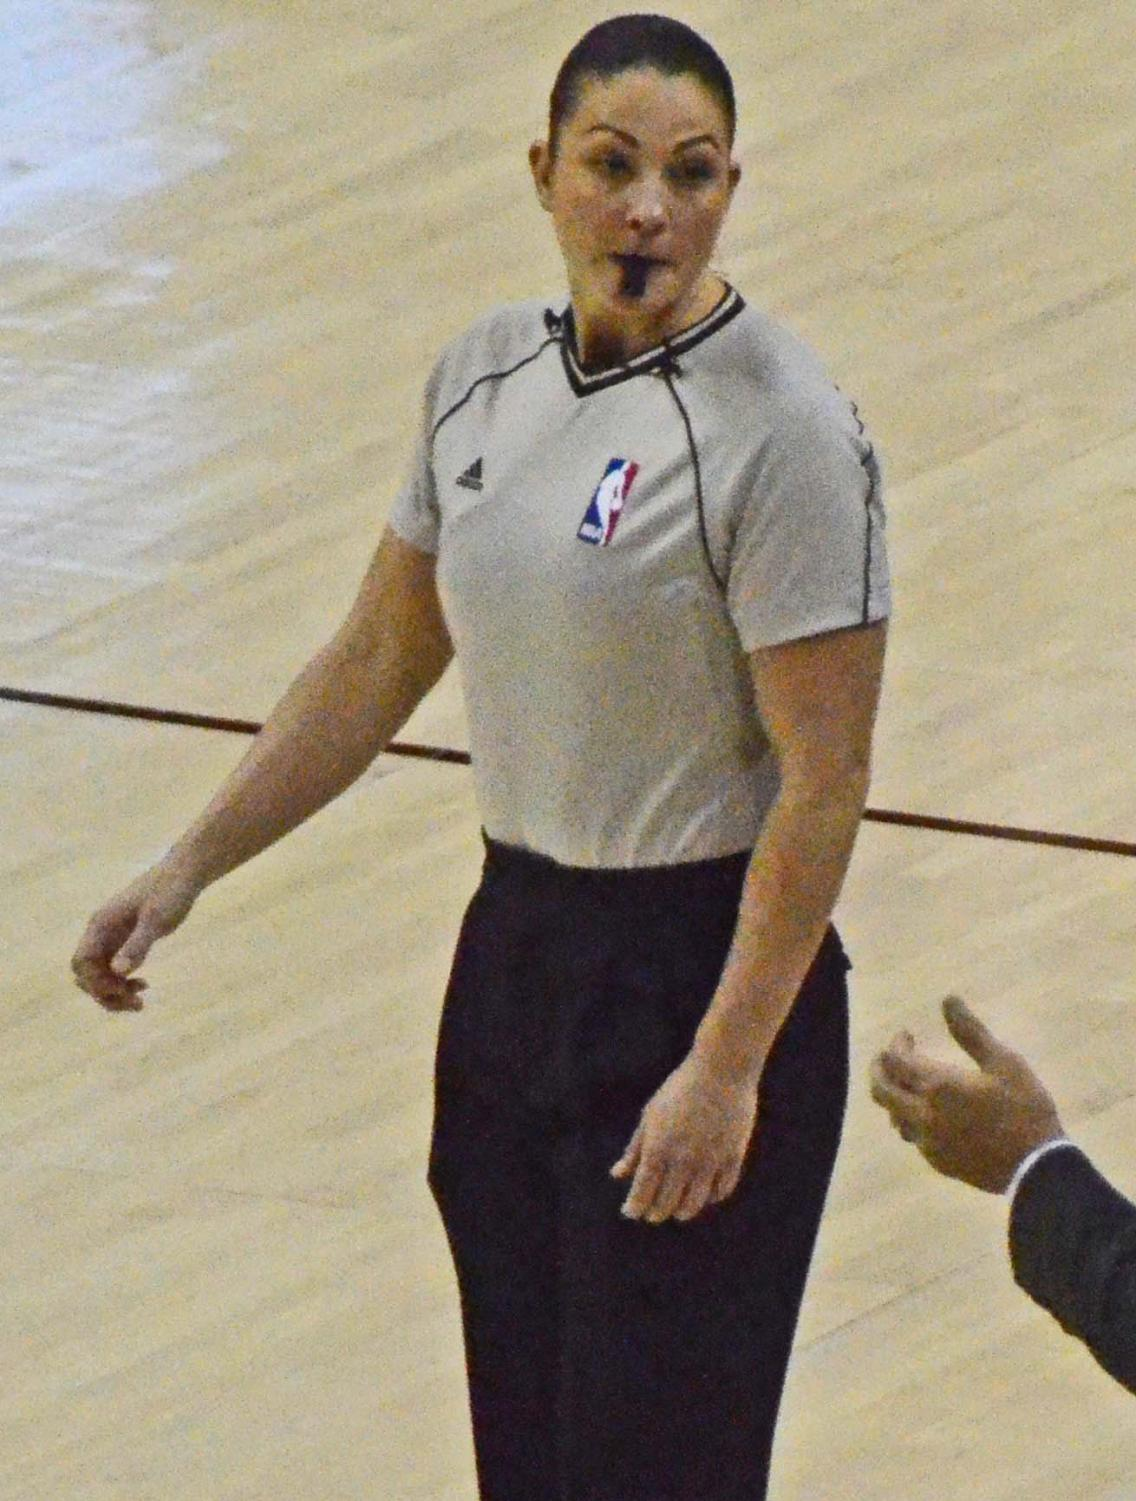 Lauren Holtkamp is the third woman to become a full-time referee for the NBA.